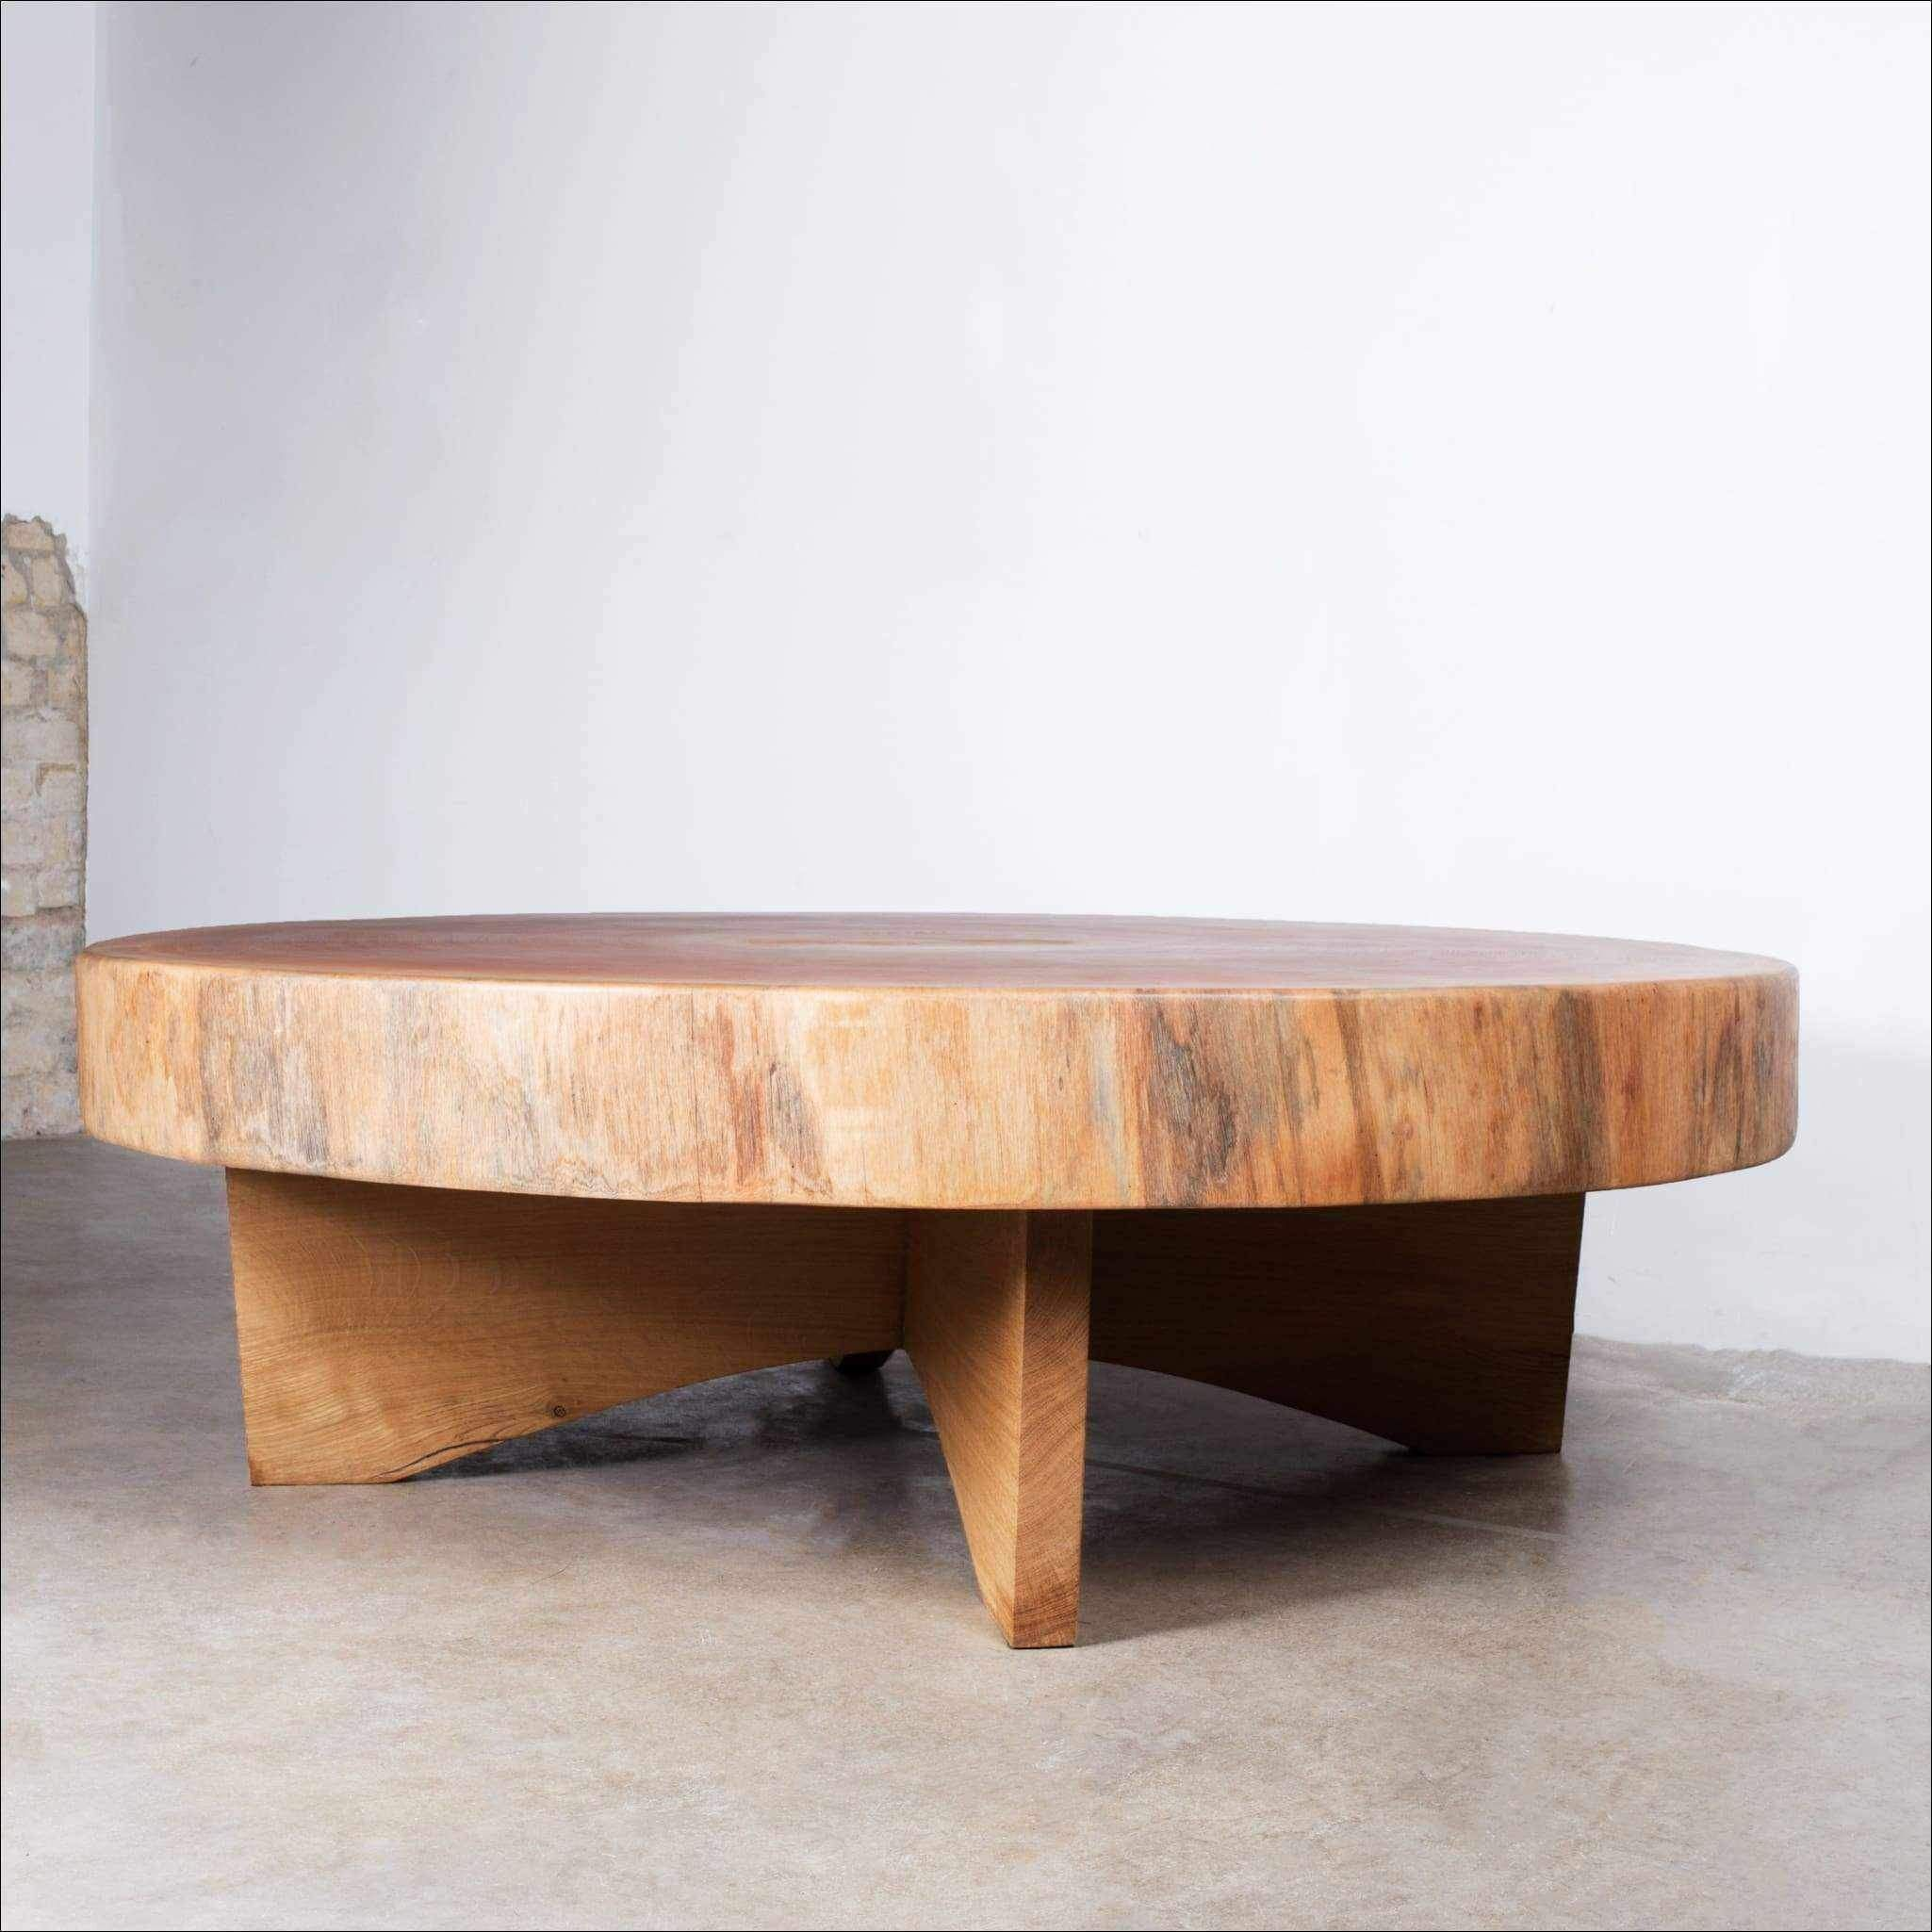 Single Slab Coffee Table Made From Ancient Wood Set On Oak Legs Ajla Coffee Table Coffee Table Wood Table [ 2050 x 2050 Pixel ]